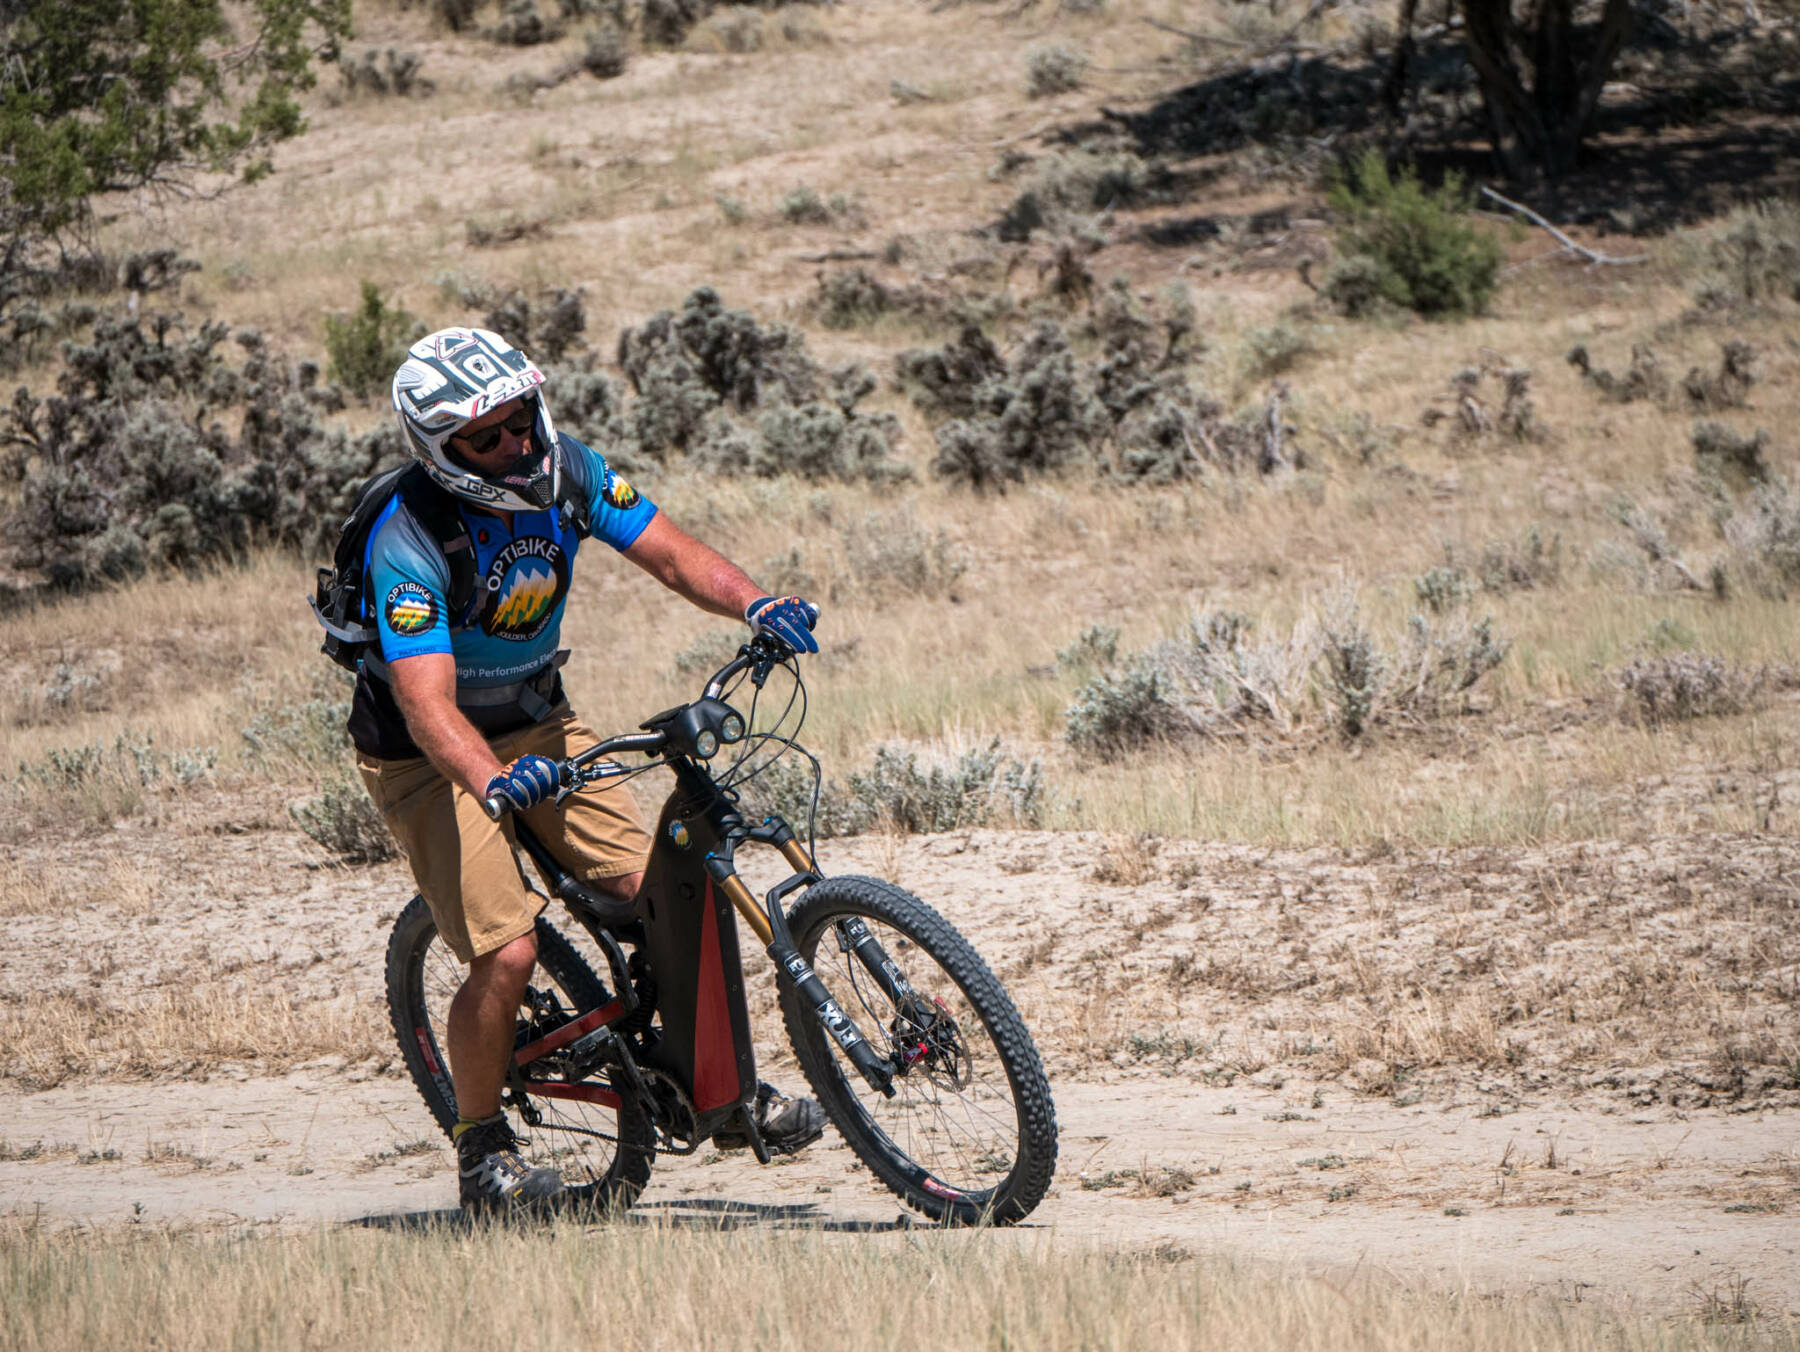 Wide tires provide tons of grip even on loose dirt